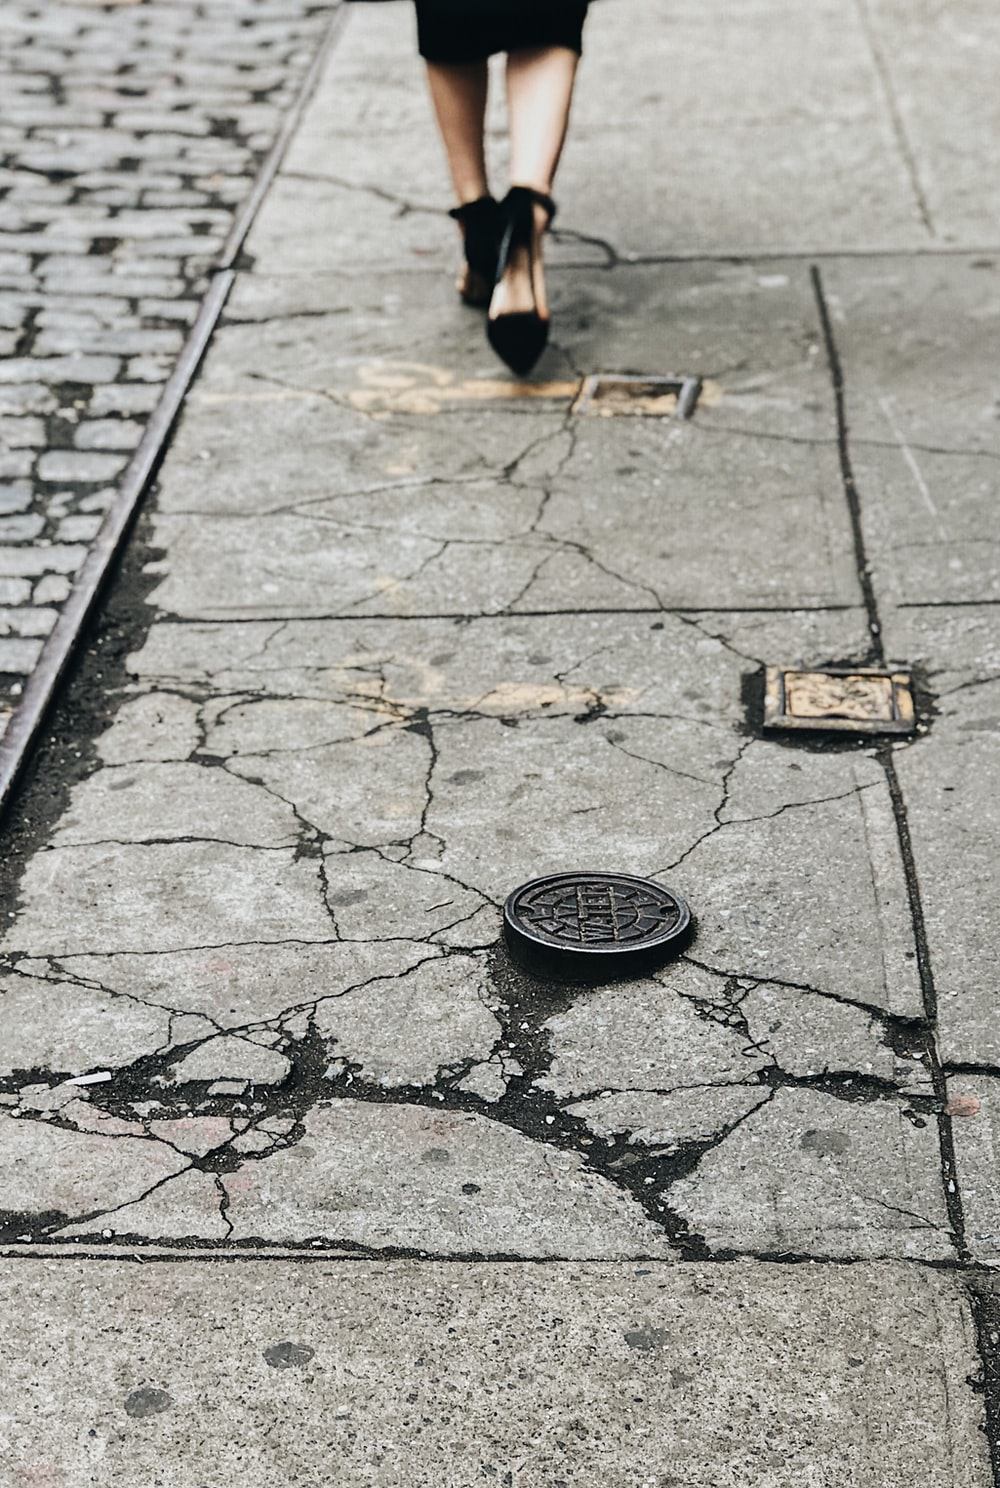 woman in black heeled sandals walking on gray concrete pavement